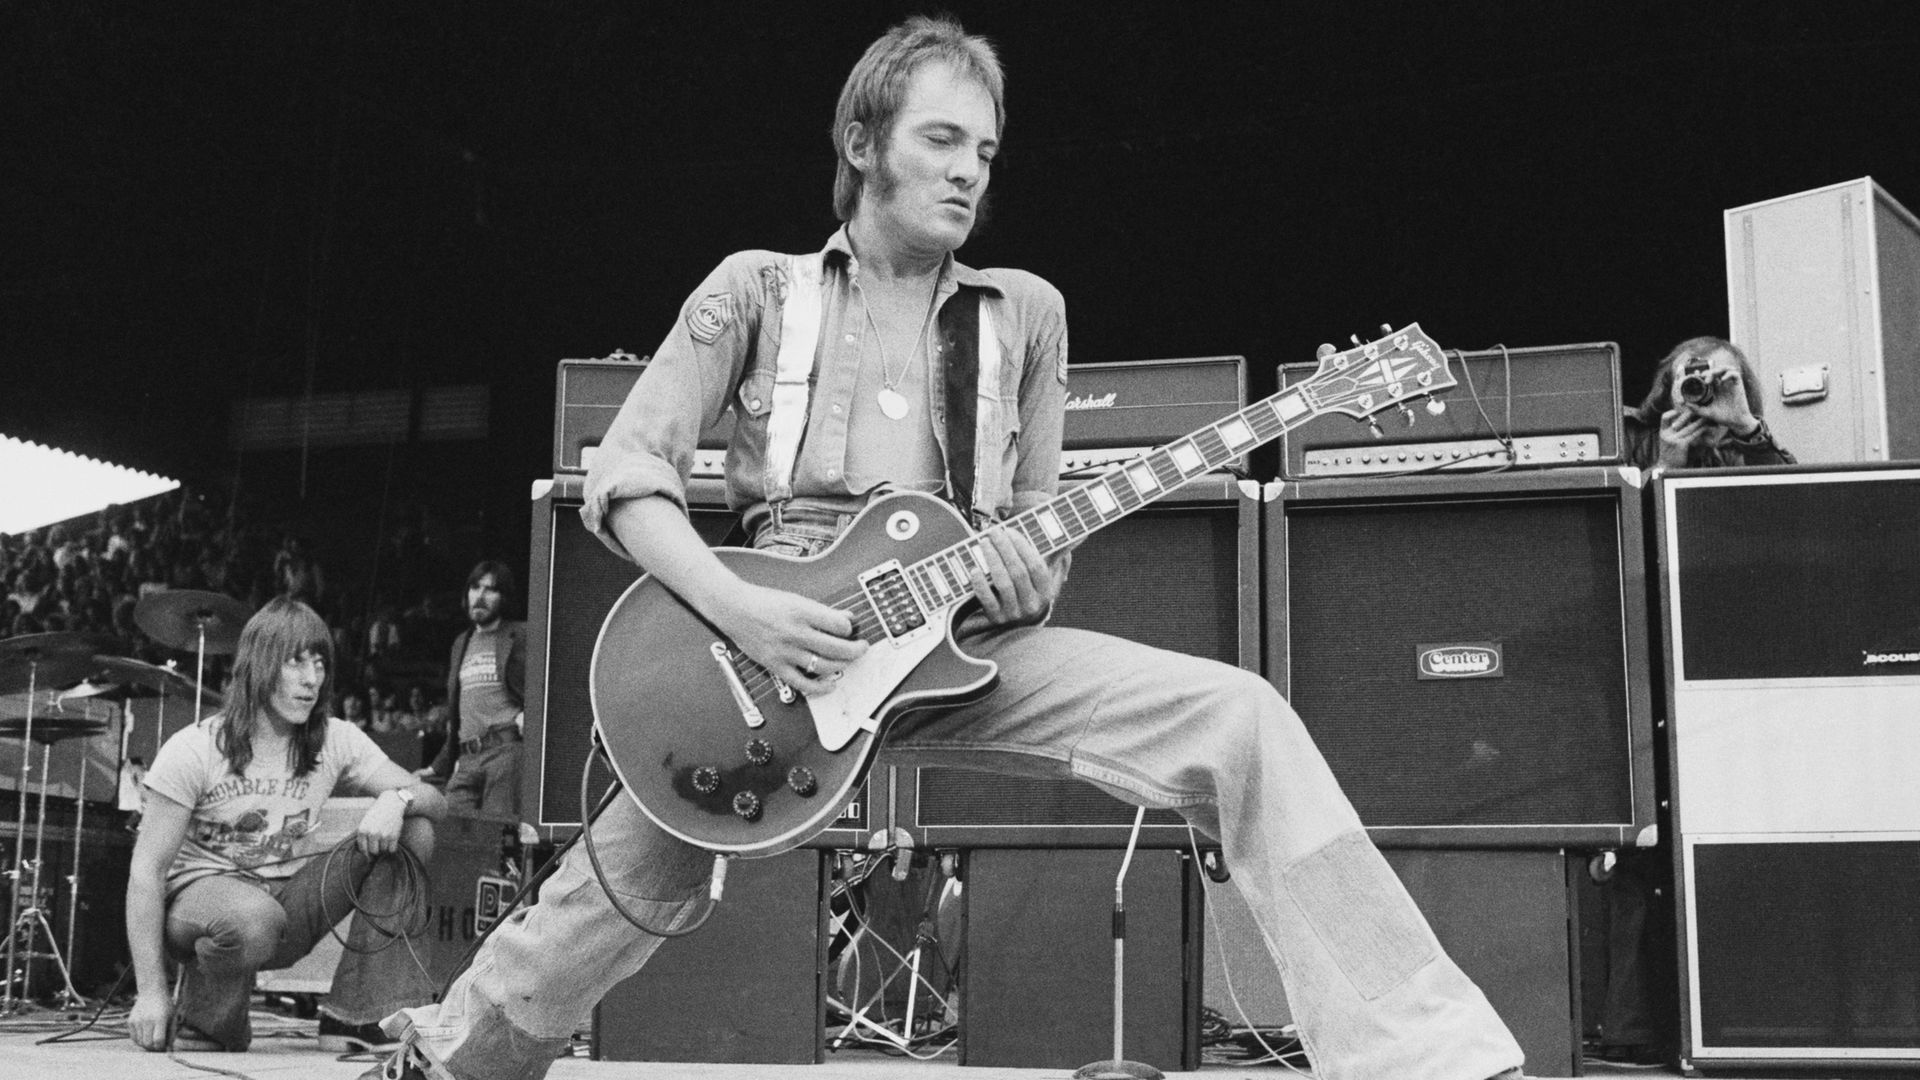 Steve Marriott, with Humble Pie, at the Summer of '74 festival, held at Charlton Athletic's football ground, the Valley - Credit: Getty Images